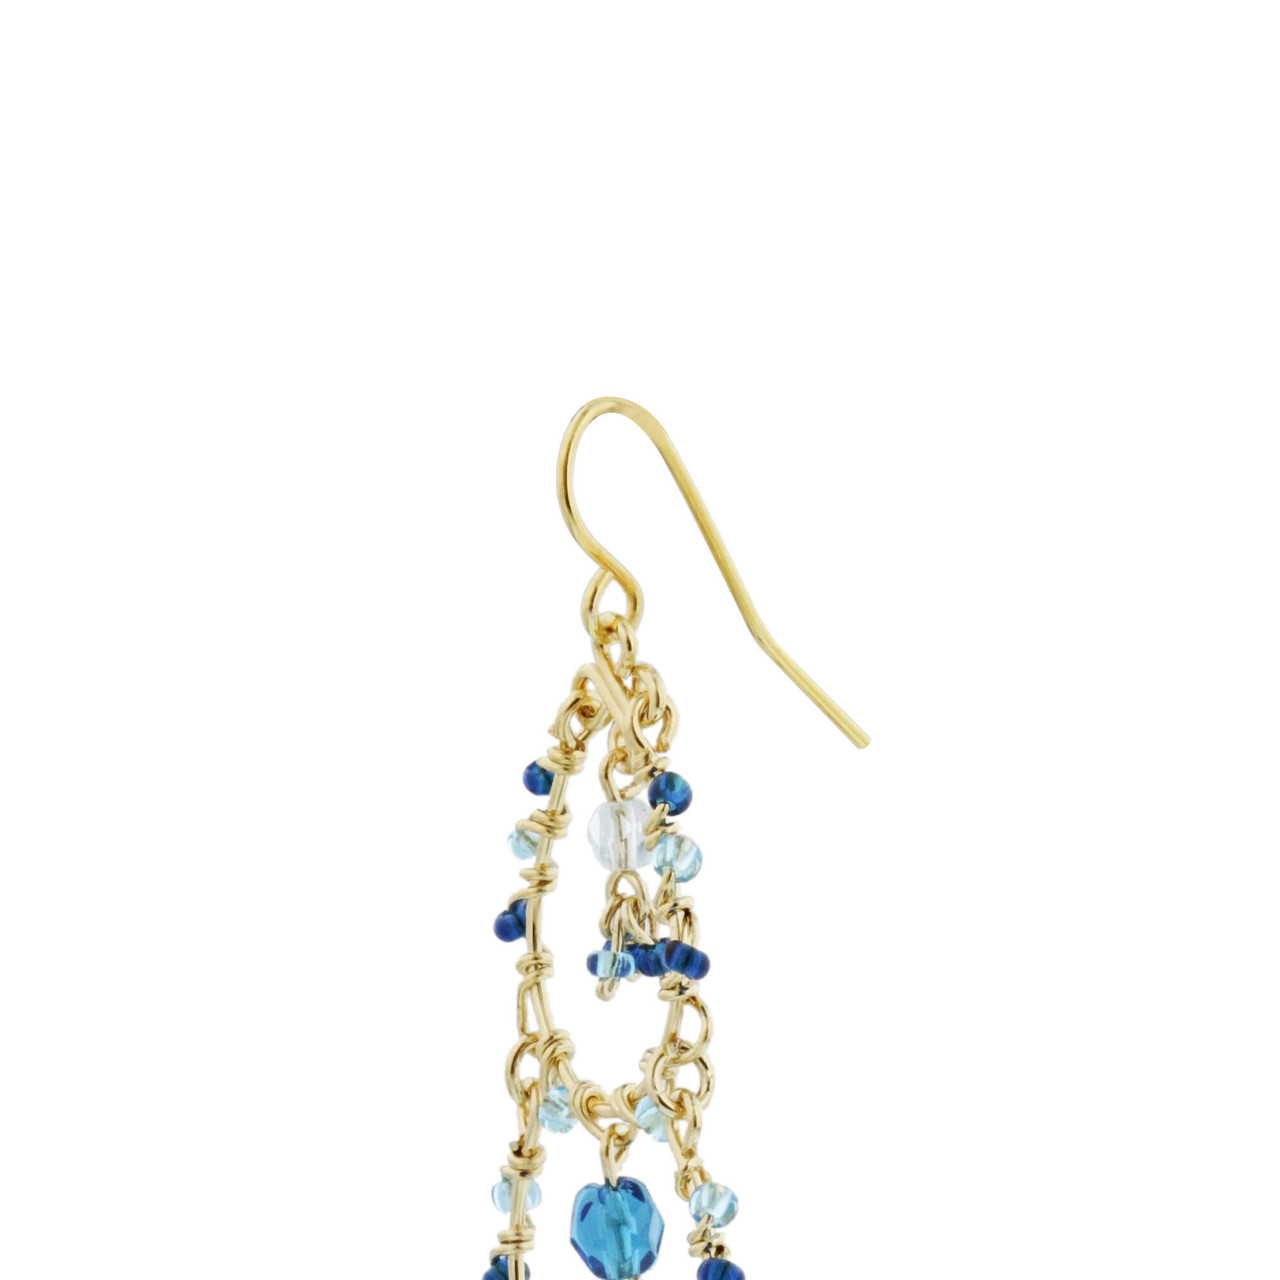 Blue Seed Bead Handmade 3.5 Inch Chandelier French Hook Earrings